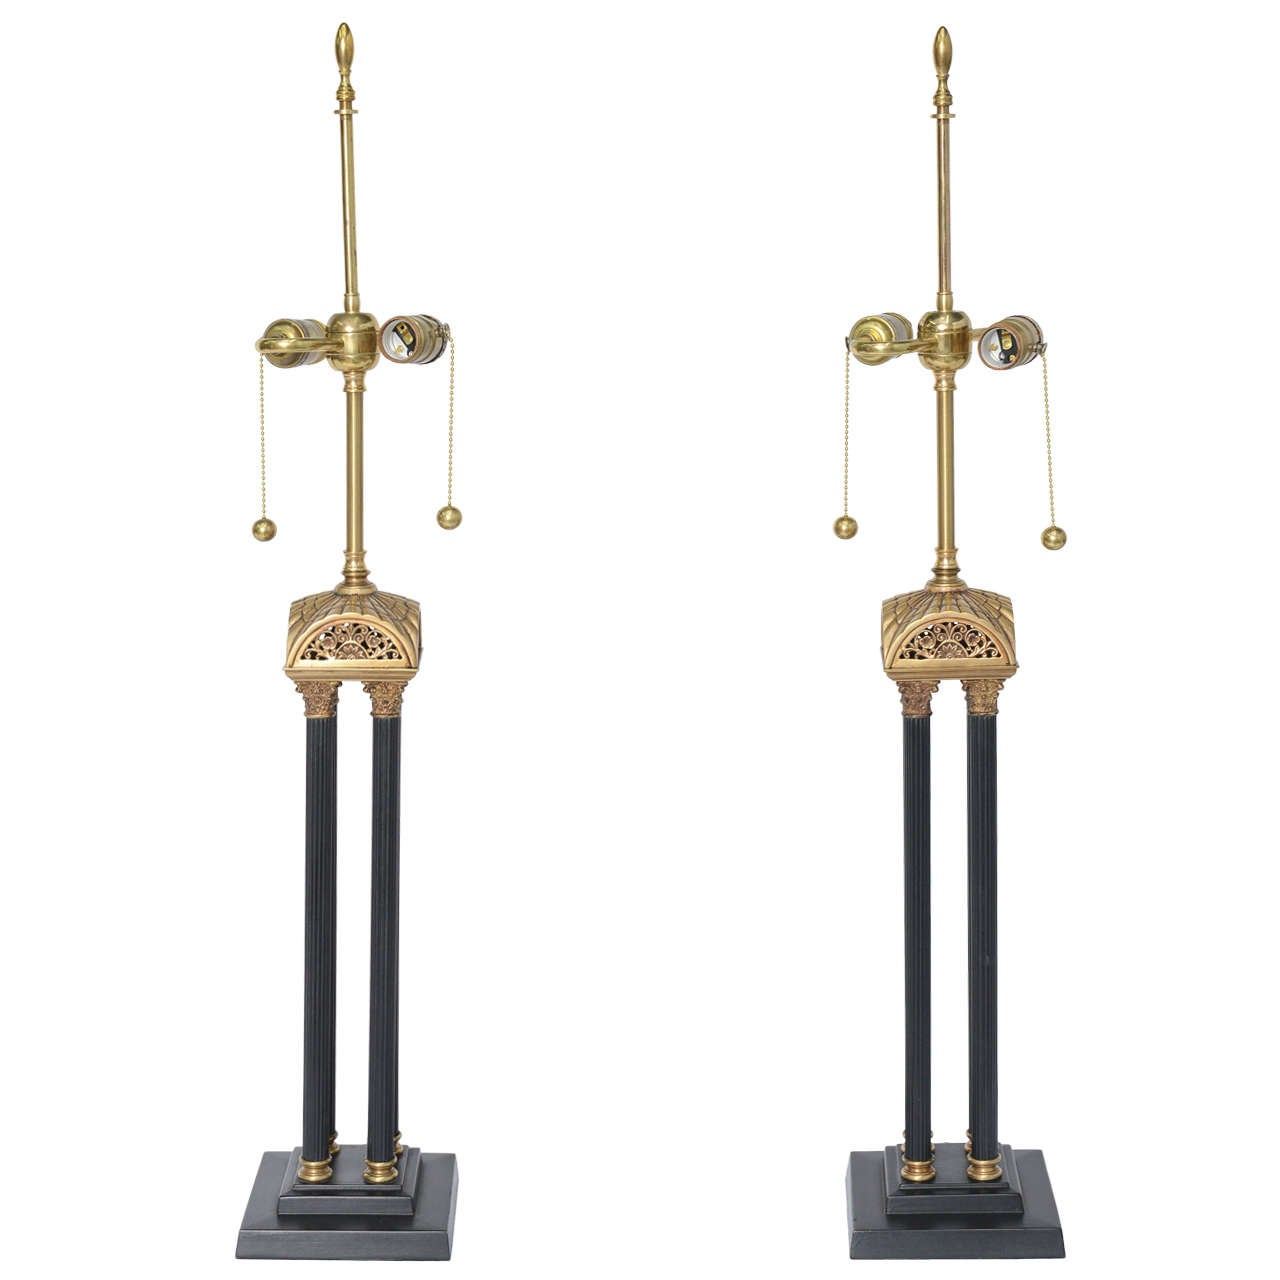 REDUCED FROM $3,200. Exquisite craftsmanship describes this pair of English neoclassical style table lamps with four Corinthian columns rising from a stepped plinth base to a stylized arched roof with reticulated and pierced scroll work. The stem